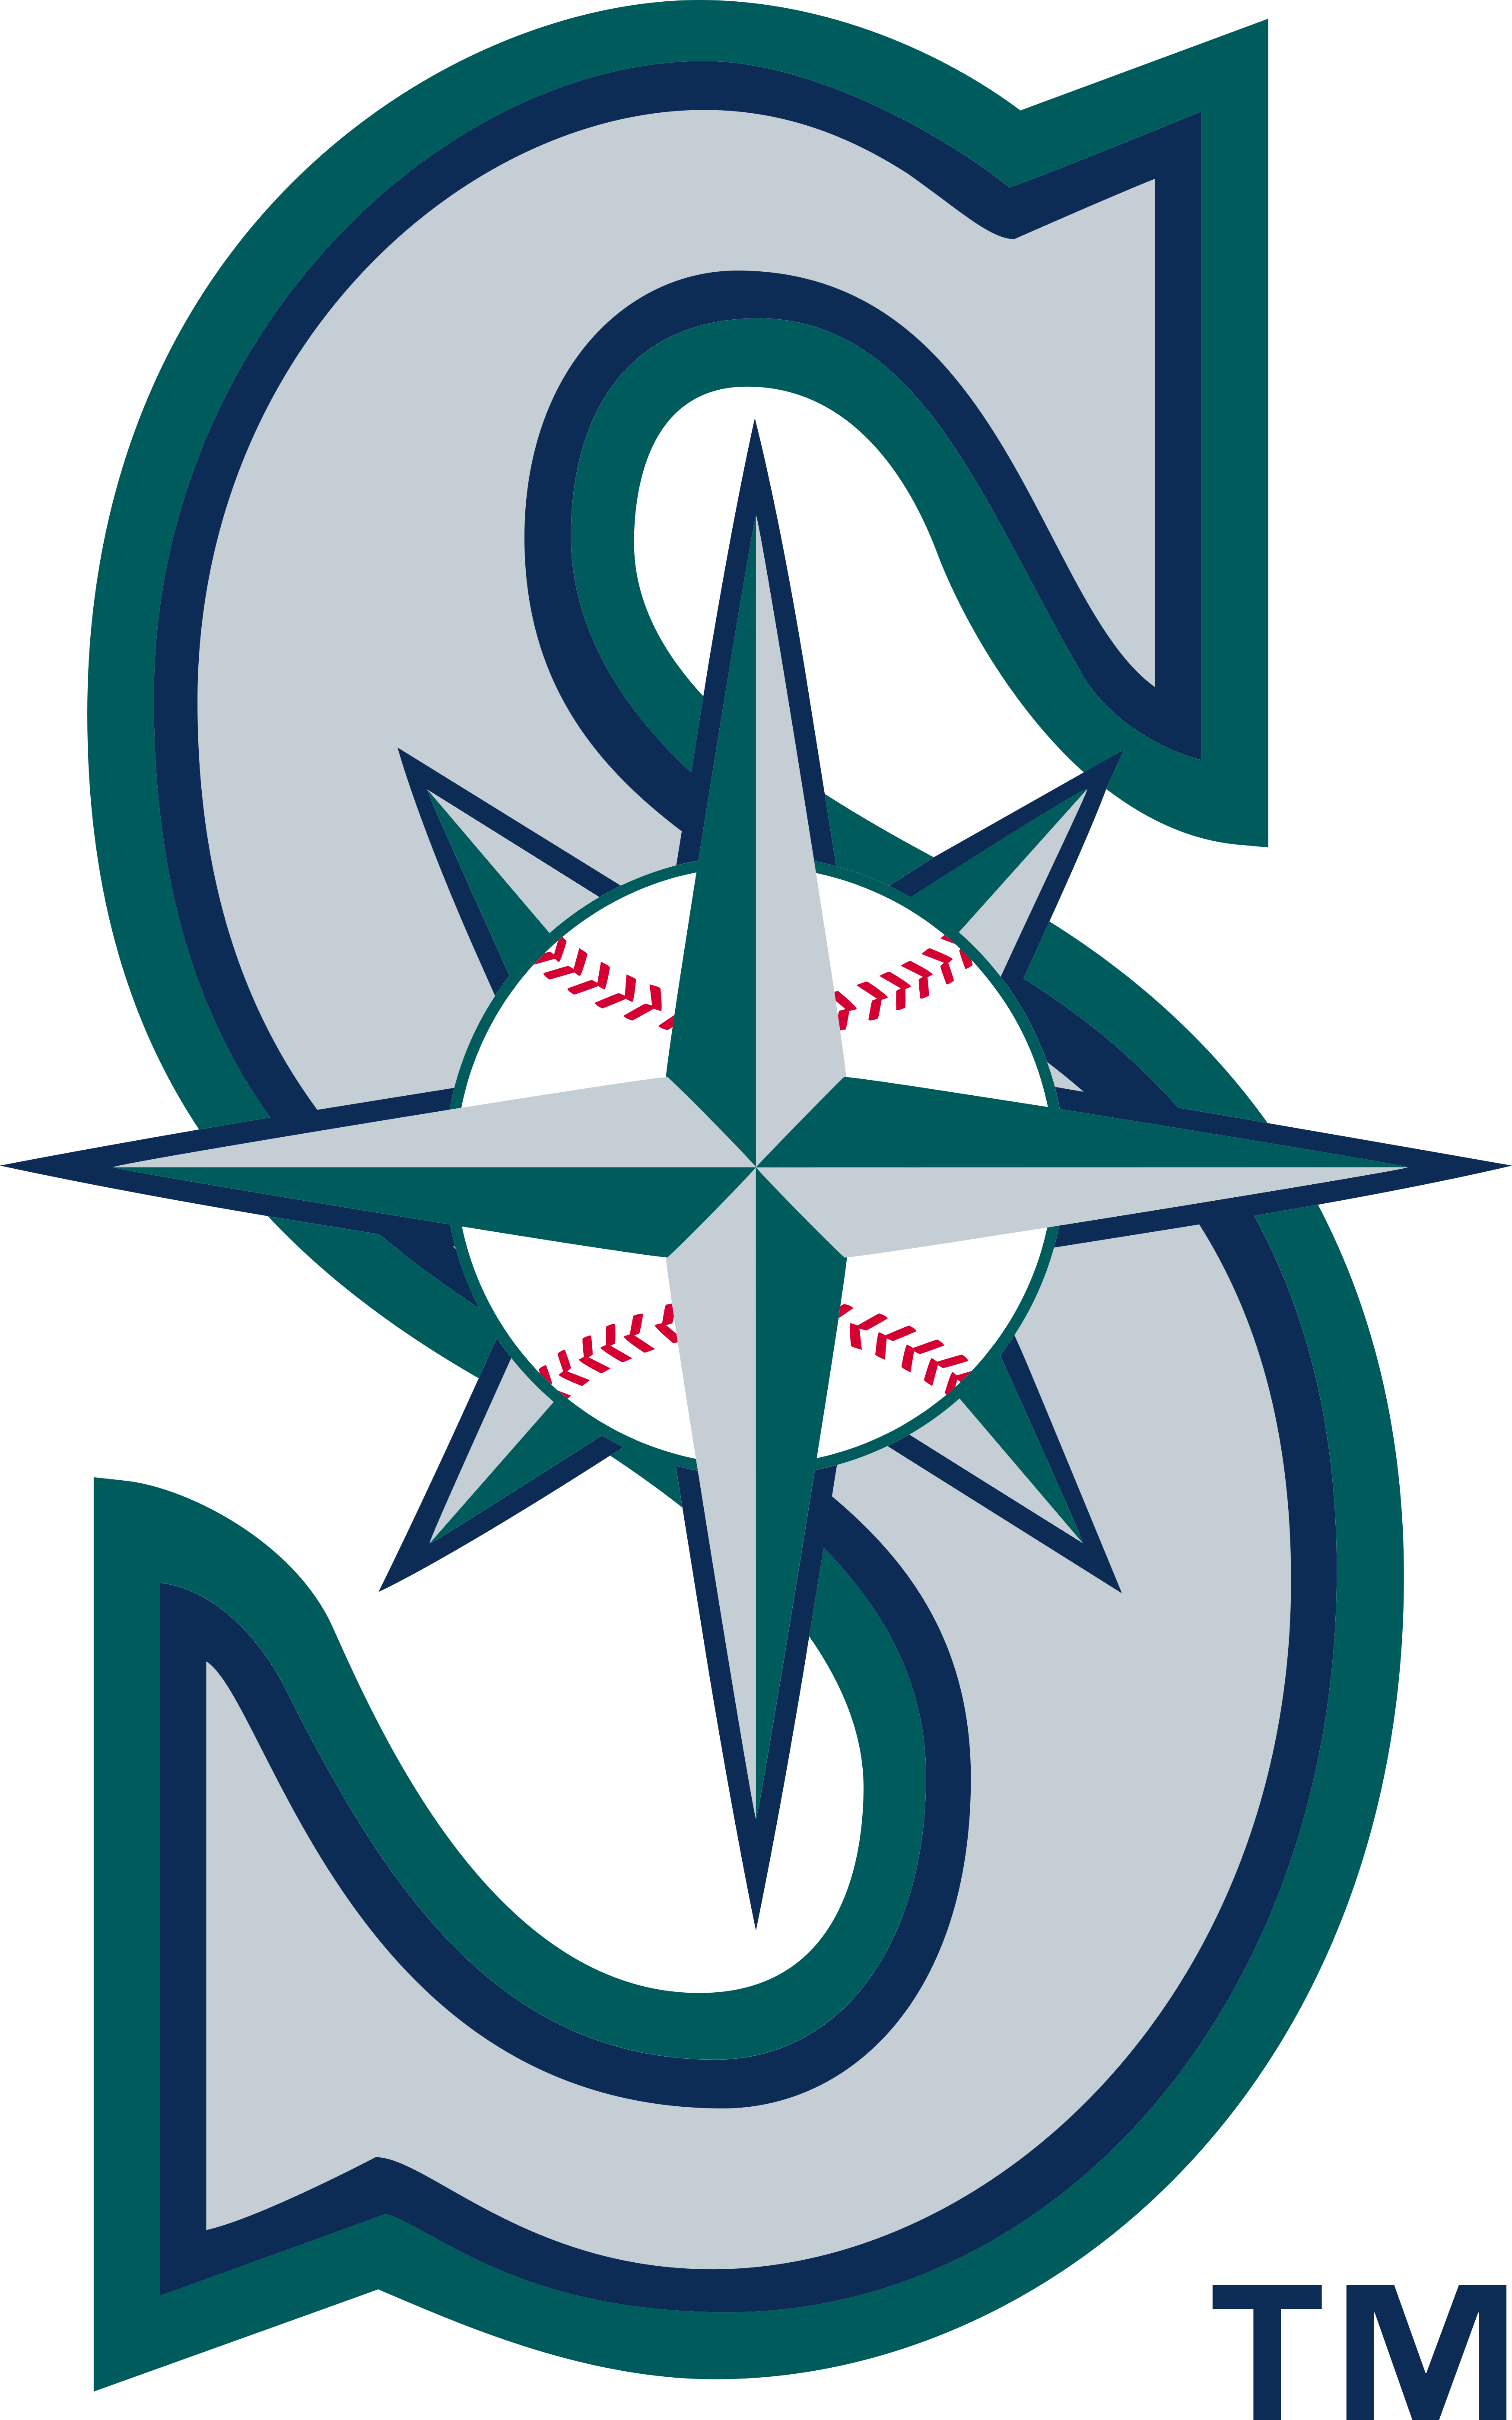 seattle mariners logo 5 - Seattle Mariners Logo